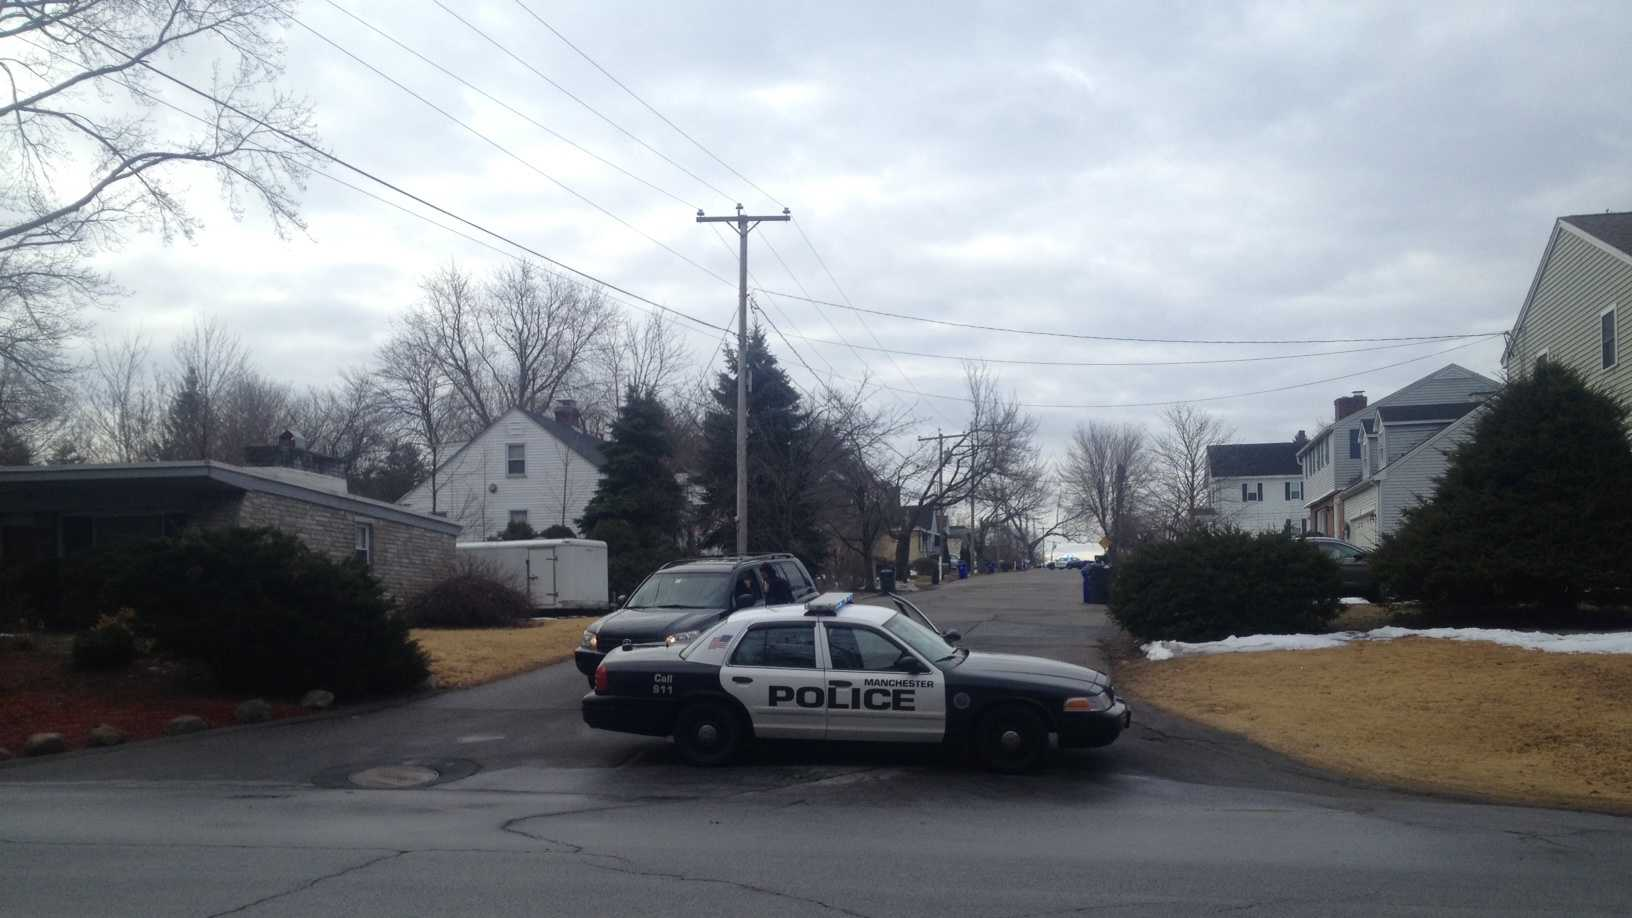 Parts of a Manchester neighborhood were evacuated Thursday morning due to a possible pipe bomb.